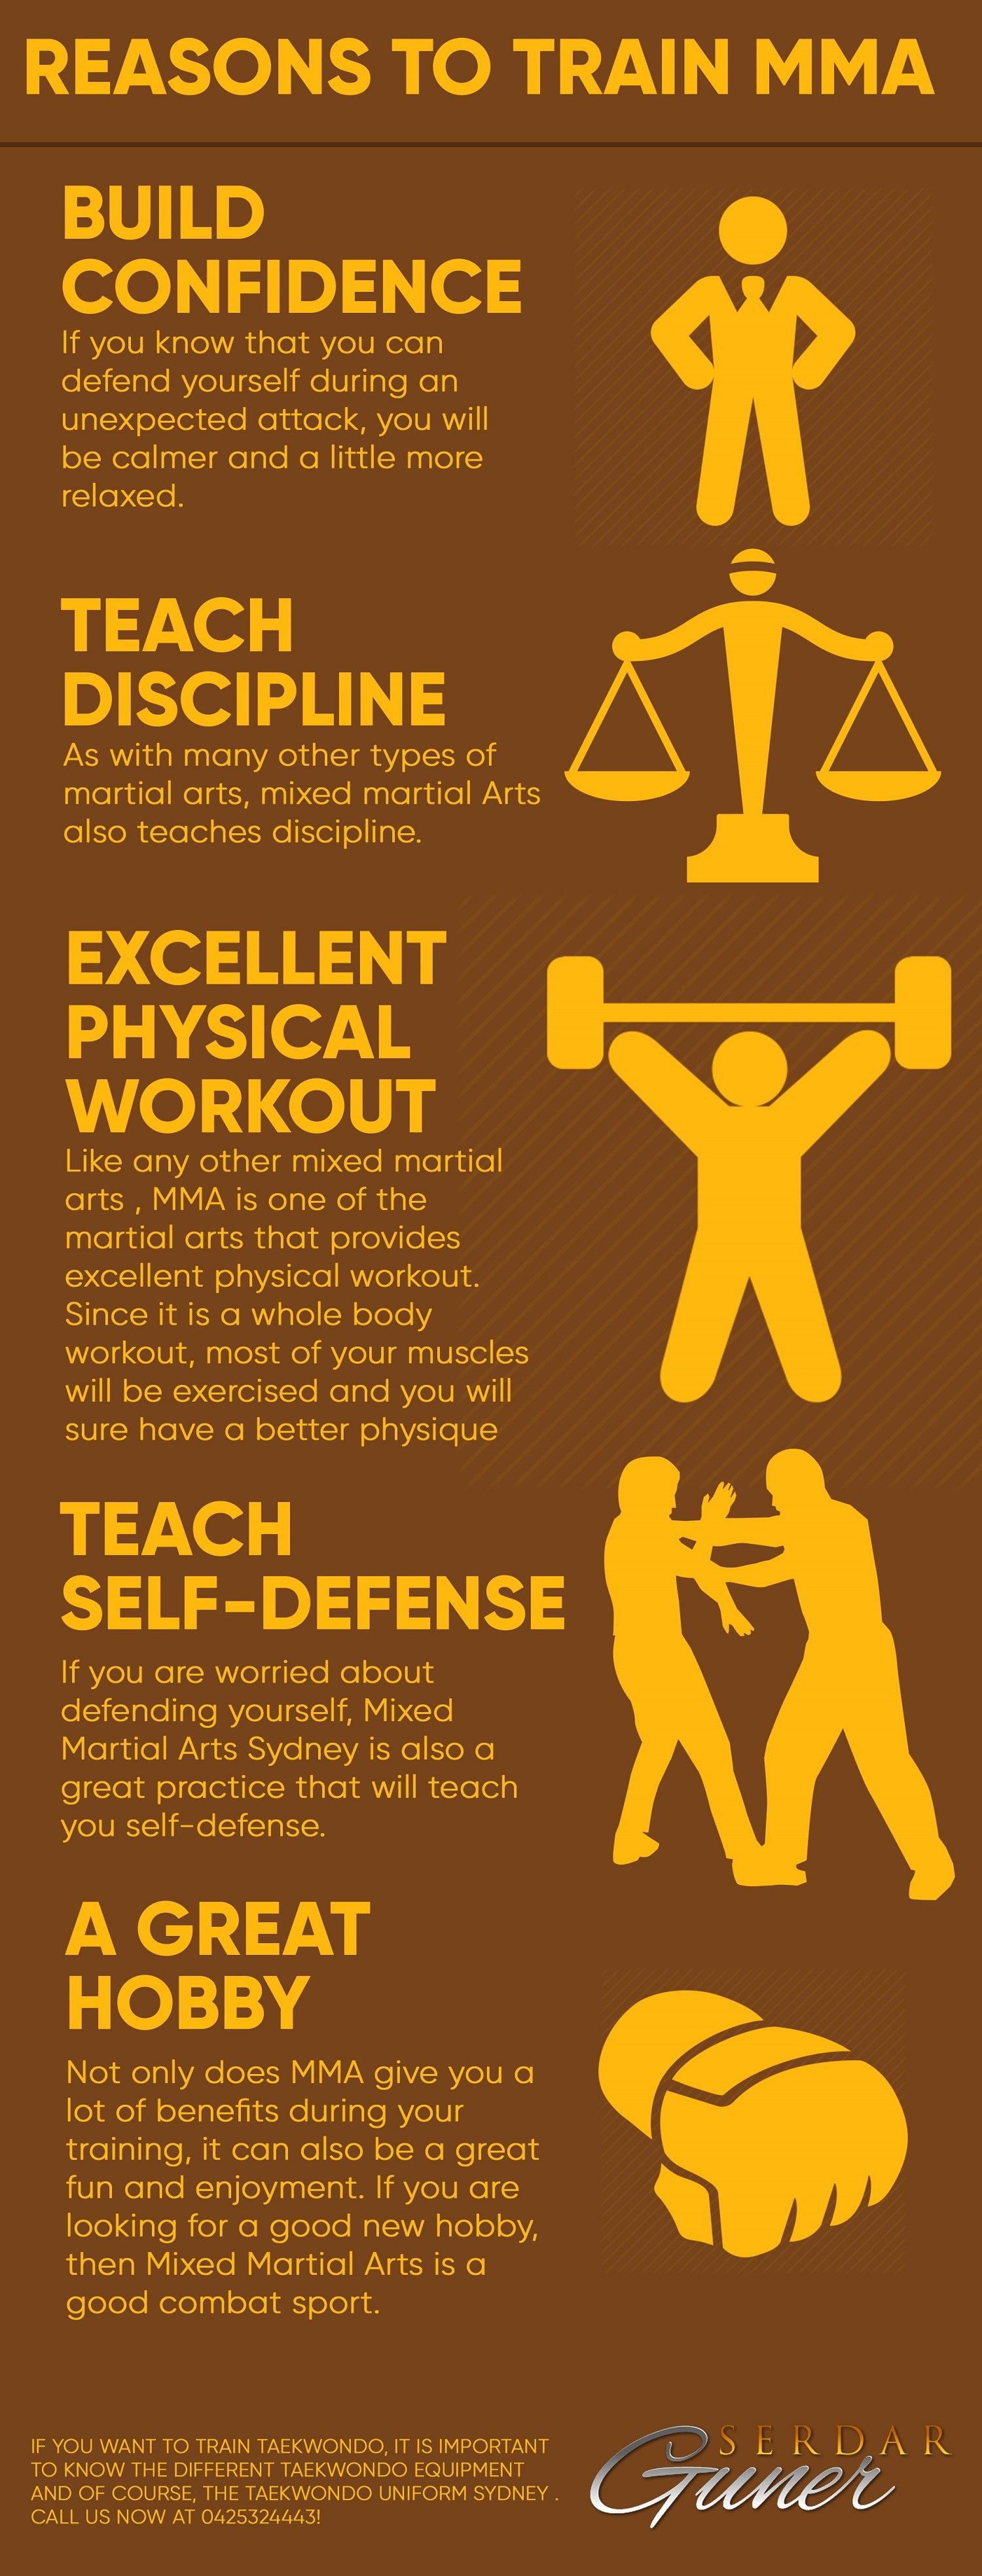 There are different Martial arts and combat sports you can choose ...